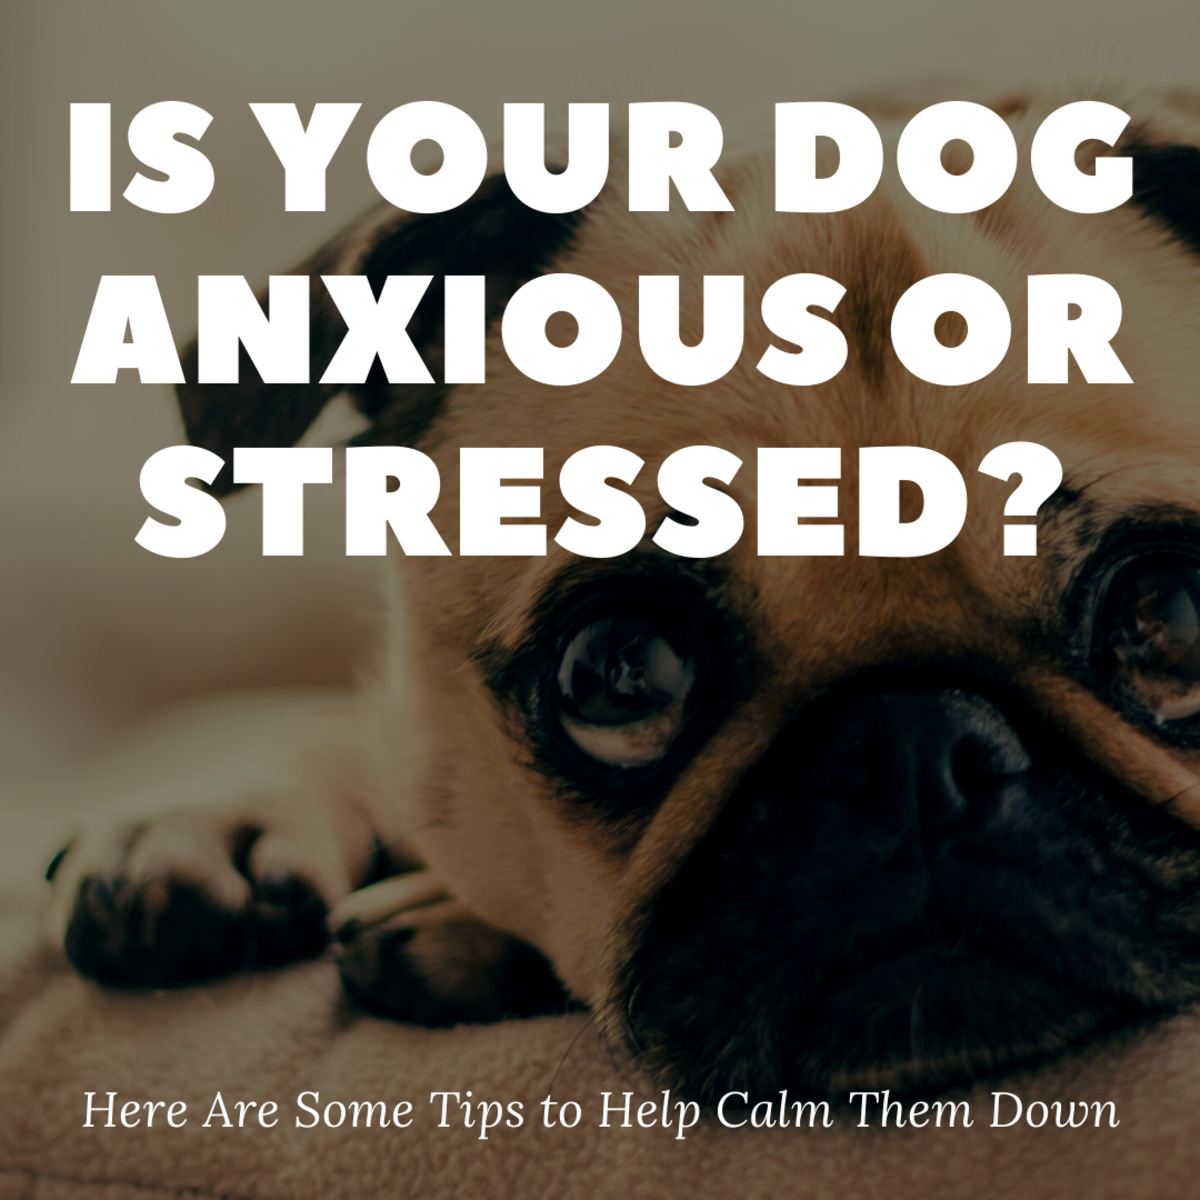 Calming your pet can be easy with a few simple lifestyle adjustments.